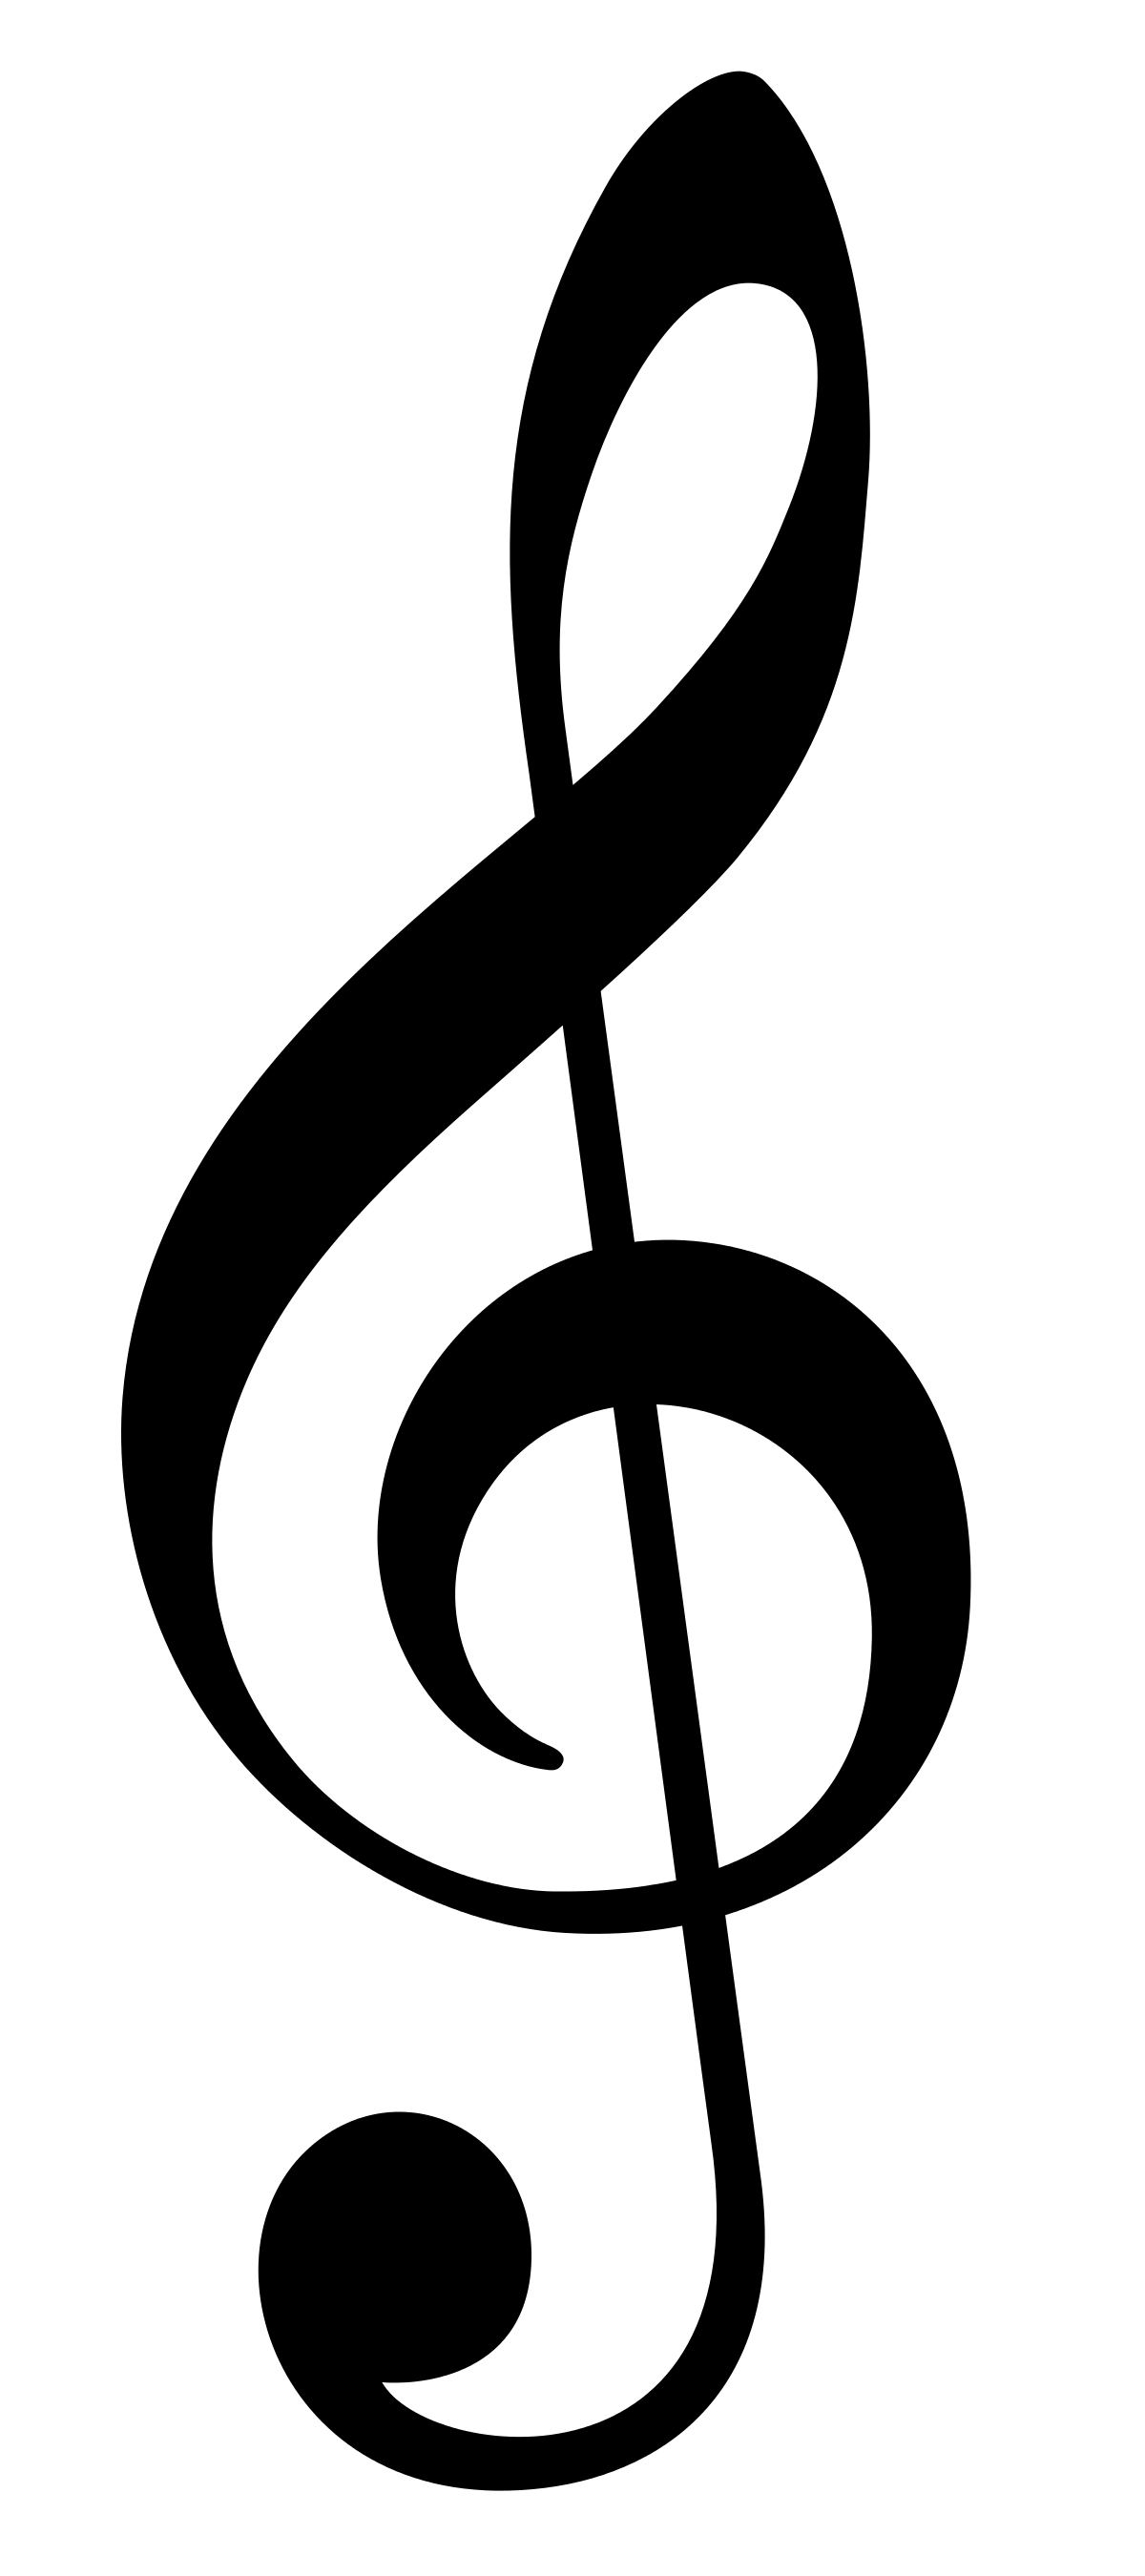 File:Treble Clef without line.svg.